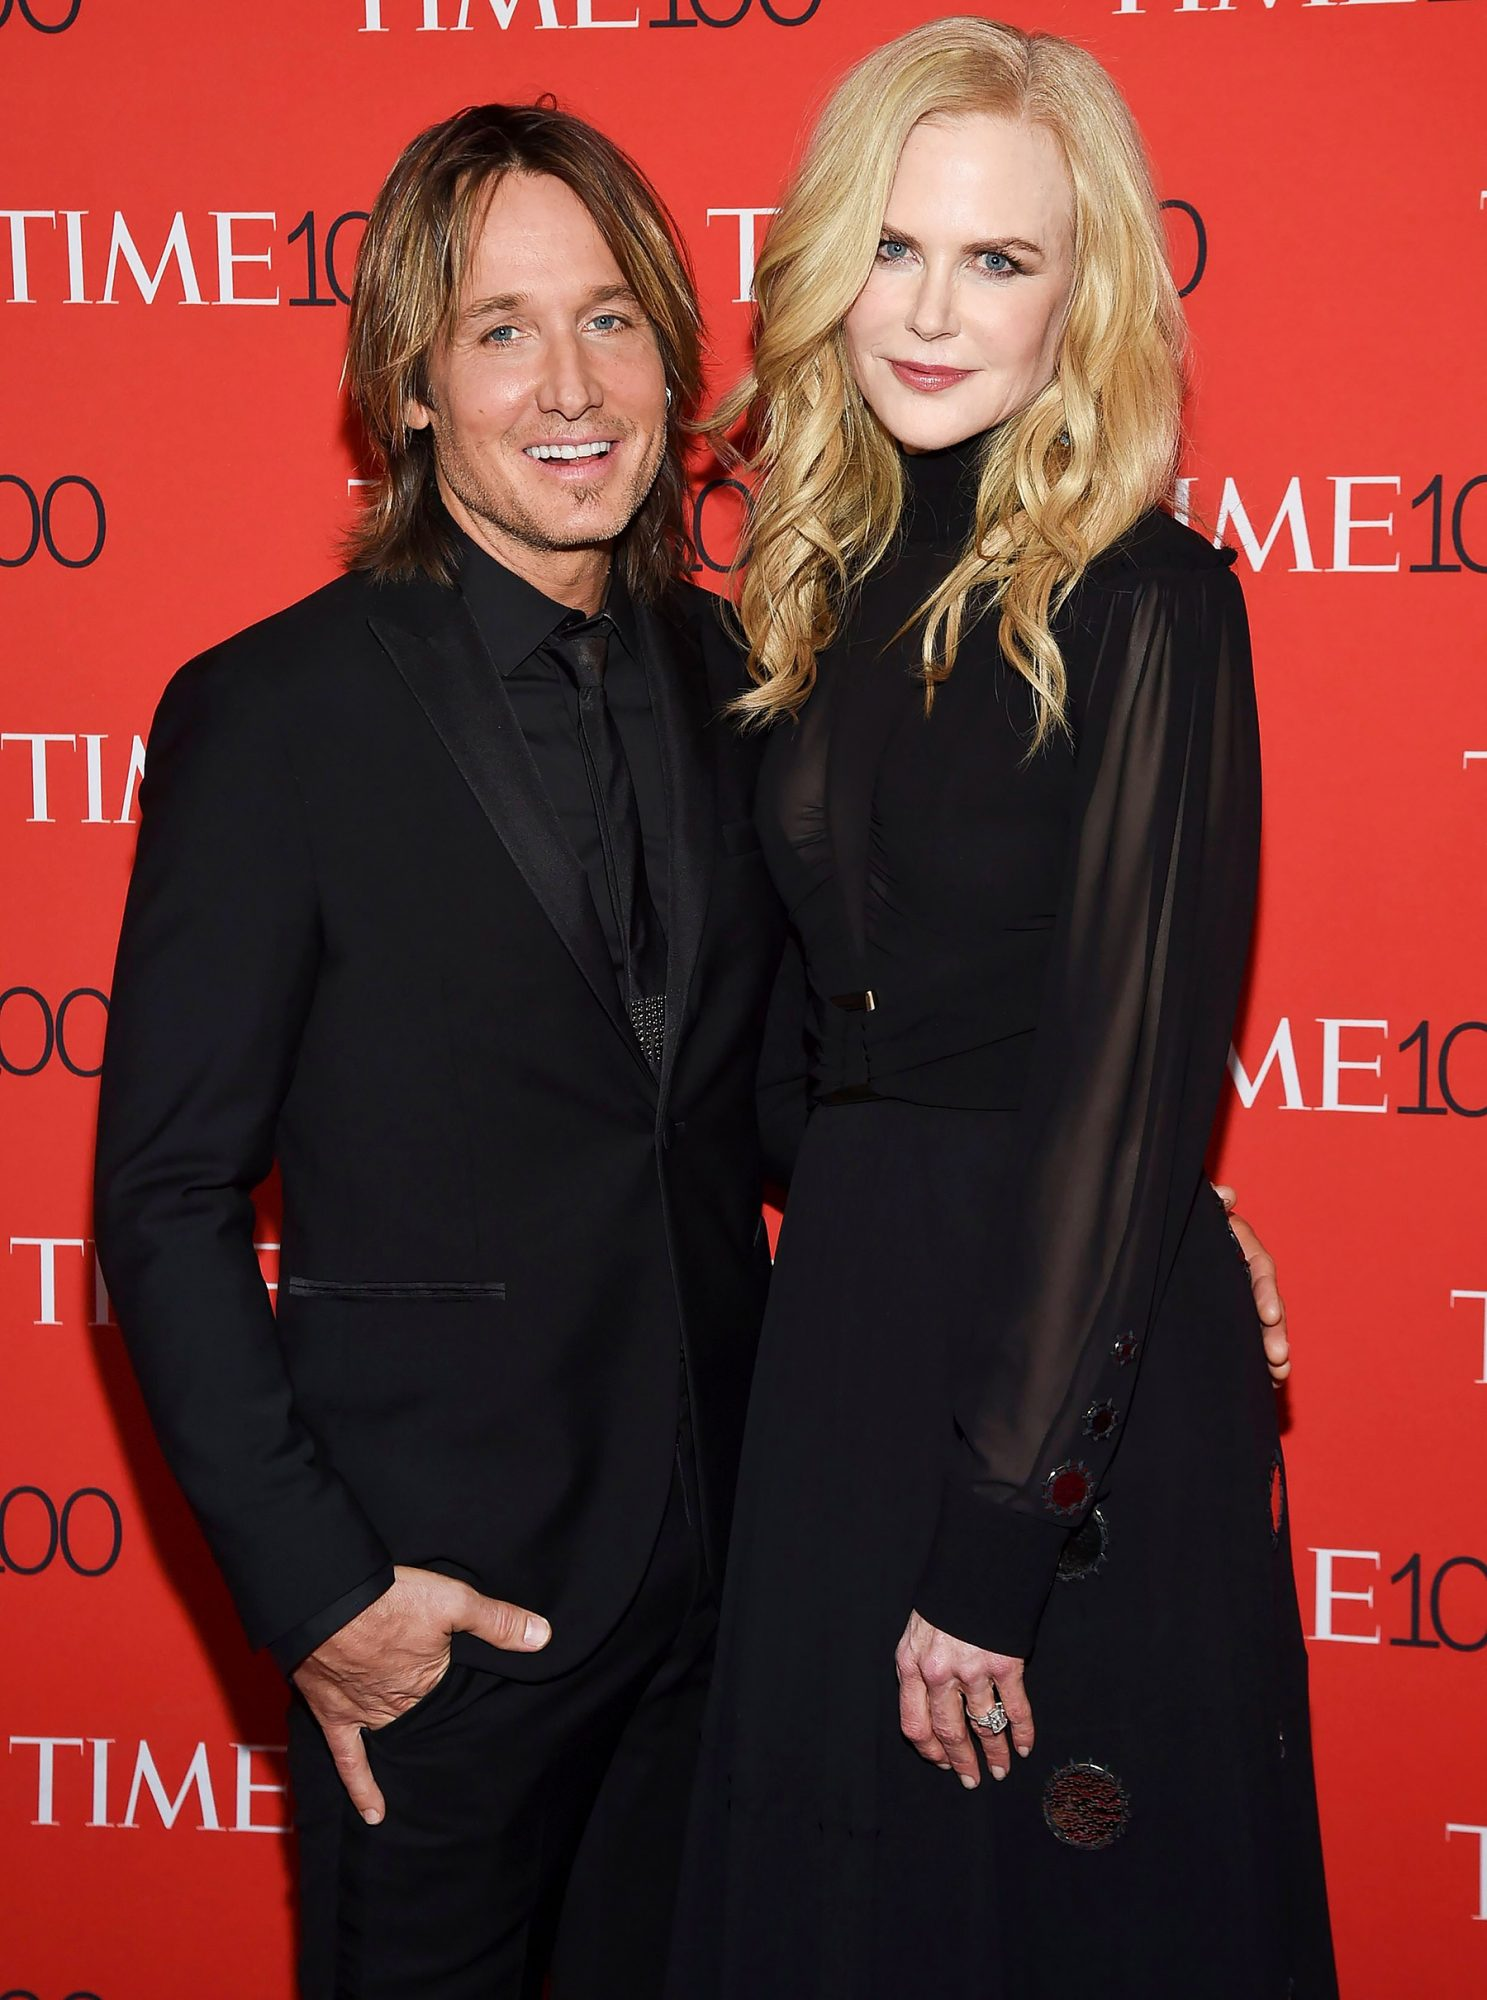 Keith Urban Gets the 'Right Sound' — in Hotel Bathroom! See Nicole Kidman's Photo of Her Husband nicole-kidman-11